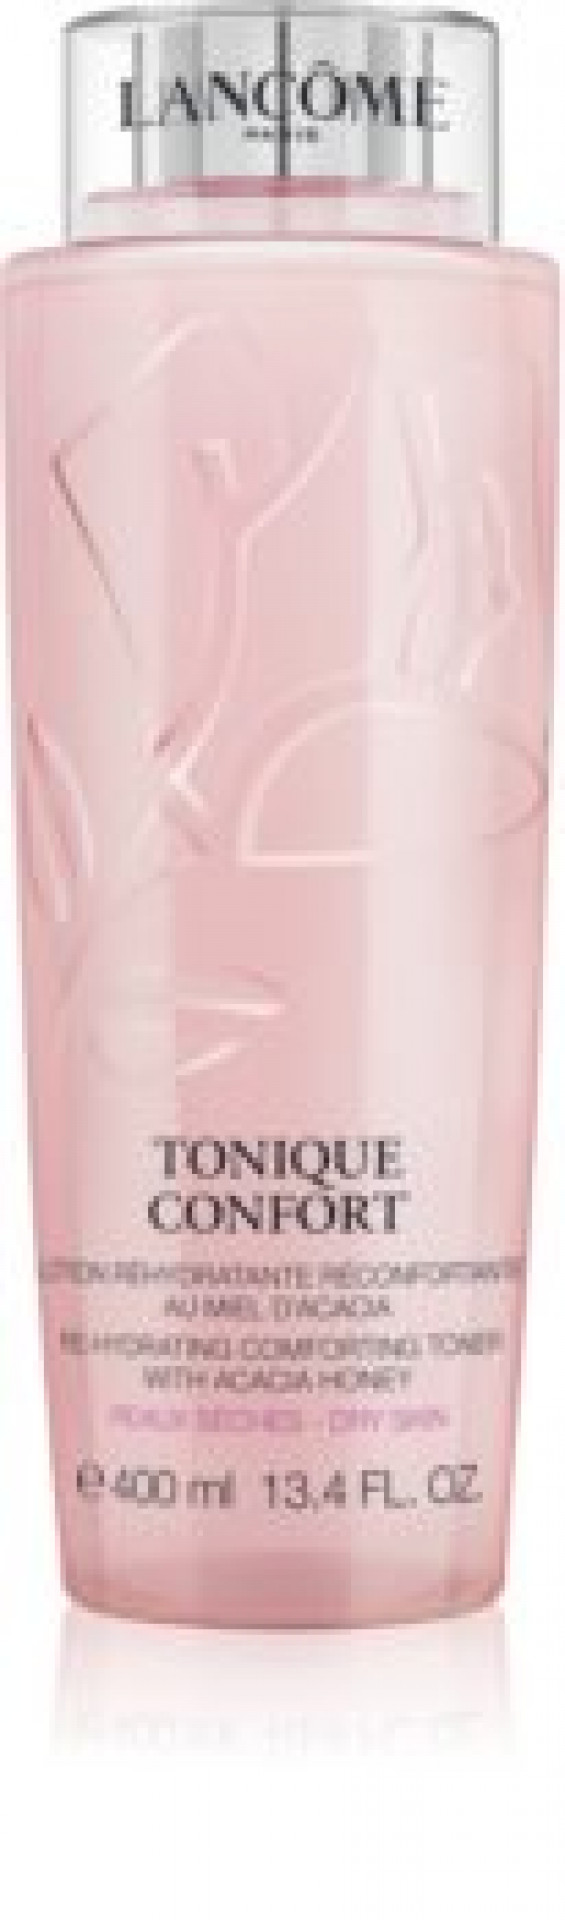 Lancôme Tonique Confort Re-Hydrating Comforting Toner for Dry Skin